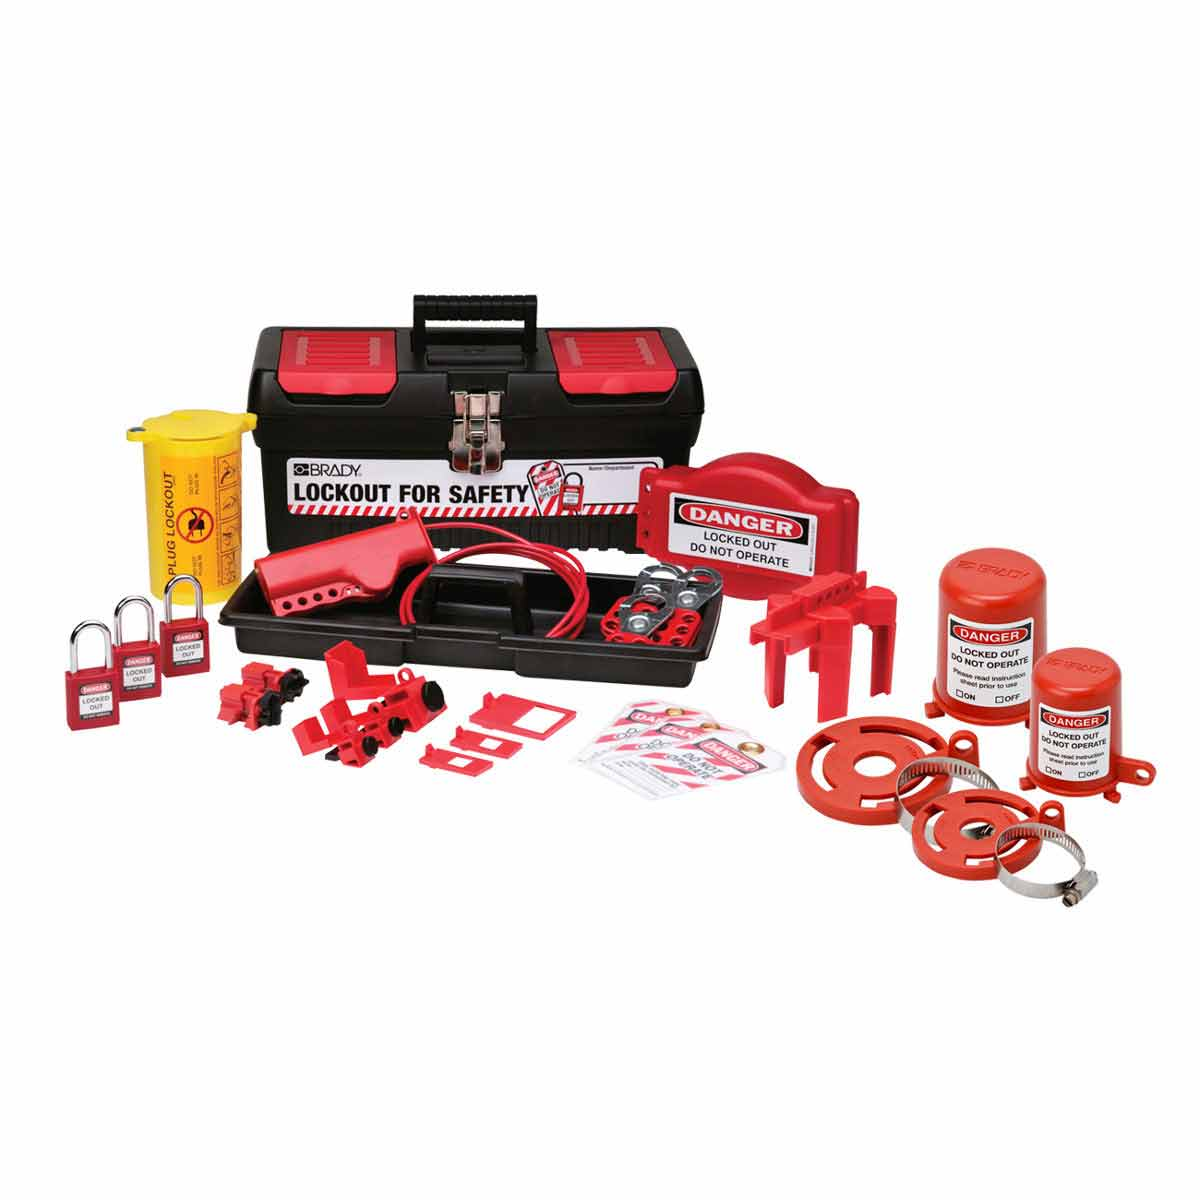 Brady® 105955 Electrical/Mechanical Risk Personal Portable Valve and Electrical Lockout Kit, Filled, 21 Pieces, 7.8 in H x 16.2 in W x 7.3 in D, Language: English